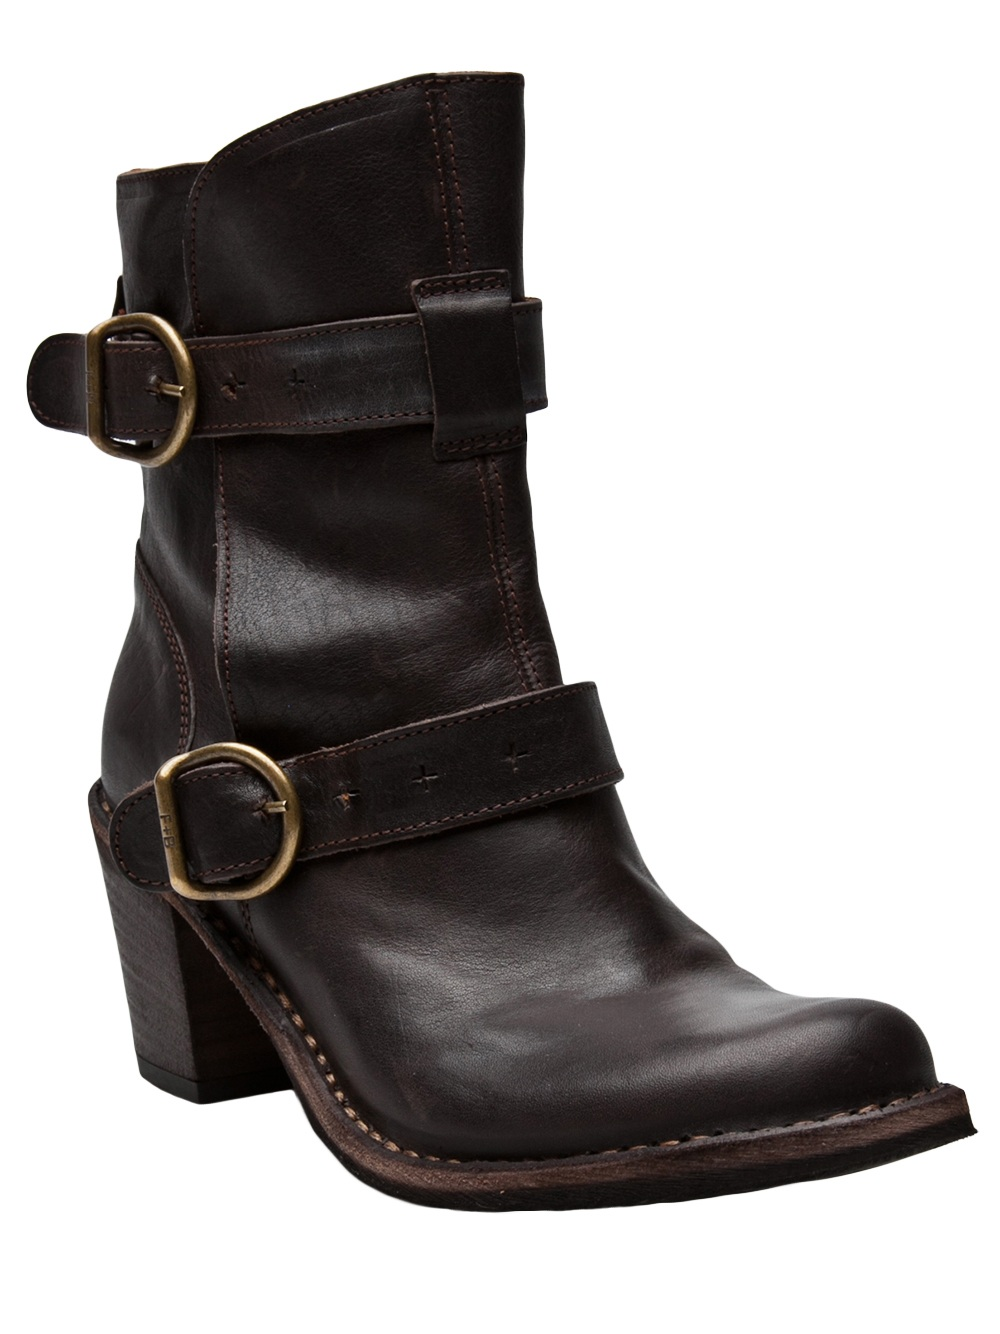 fiorentini baker double buckle boot in brown lyst. Black Bedroom Furniture Sets. Home Design Ideas